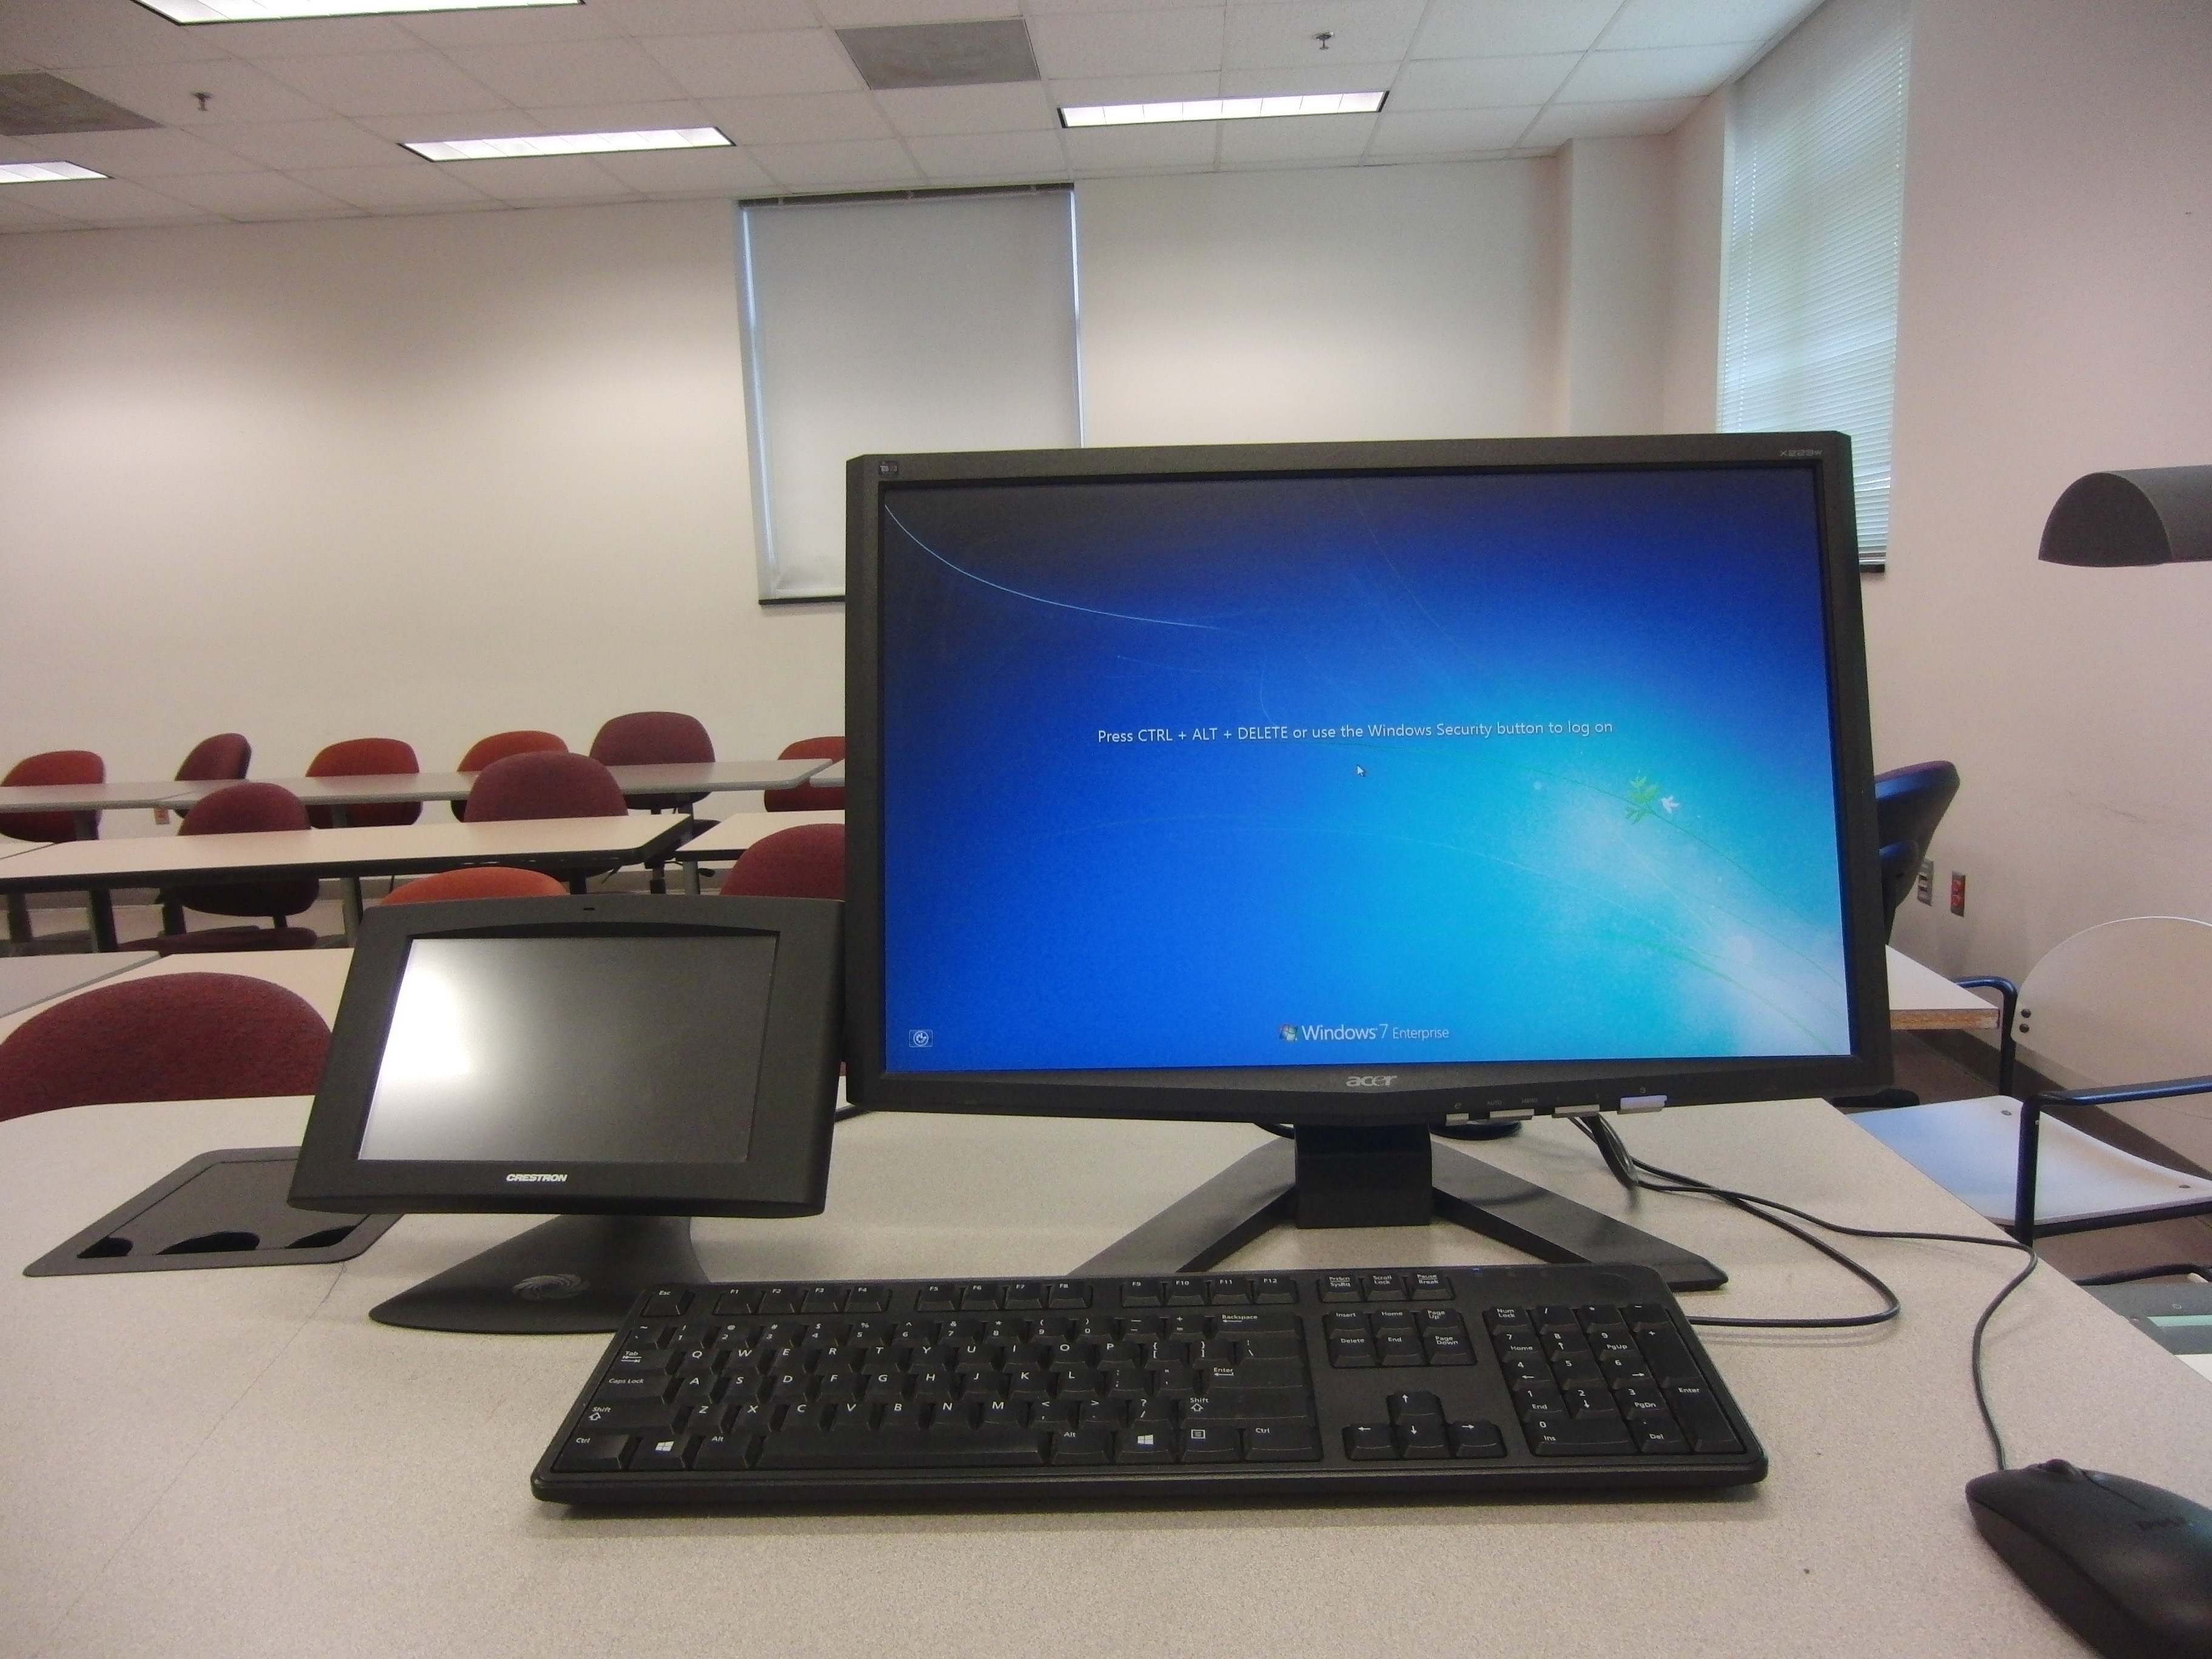 Photo of the dell computer available at the instructor's station